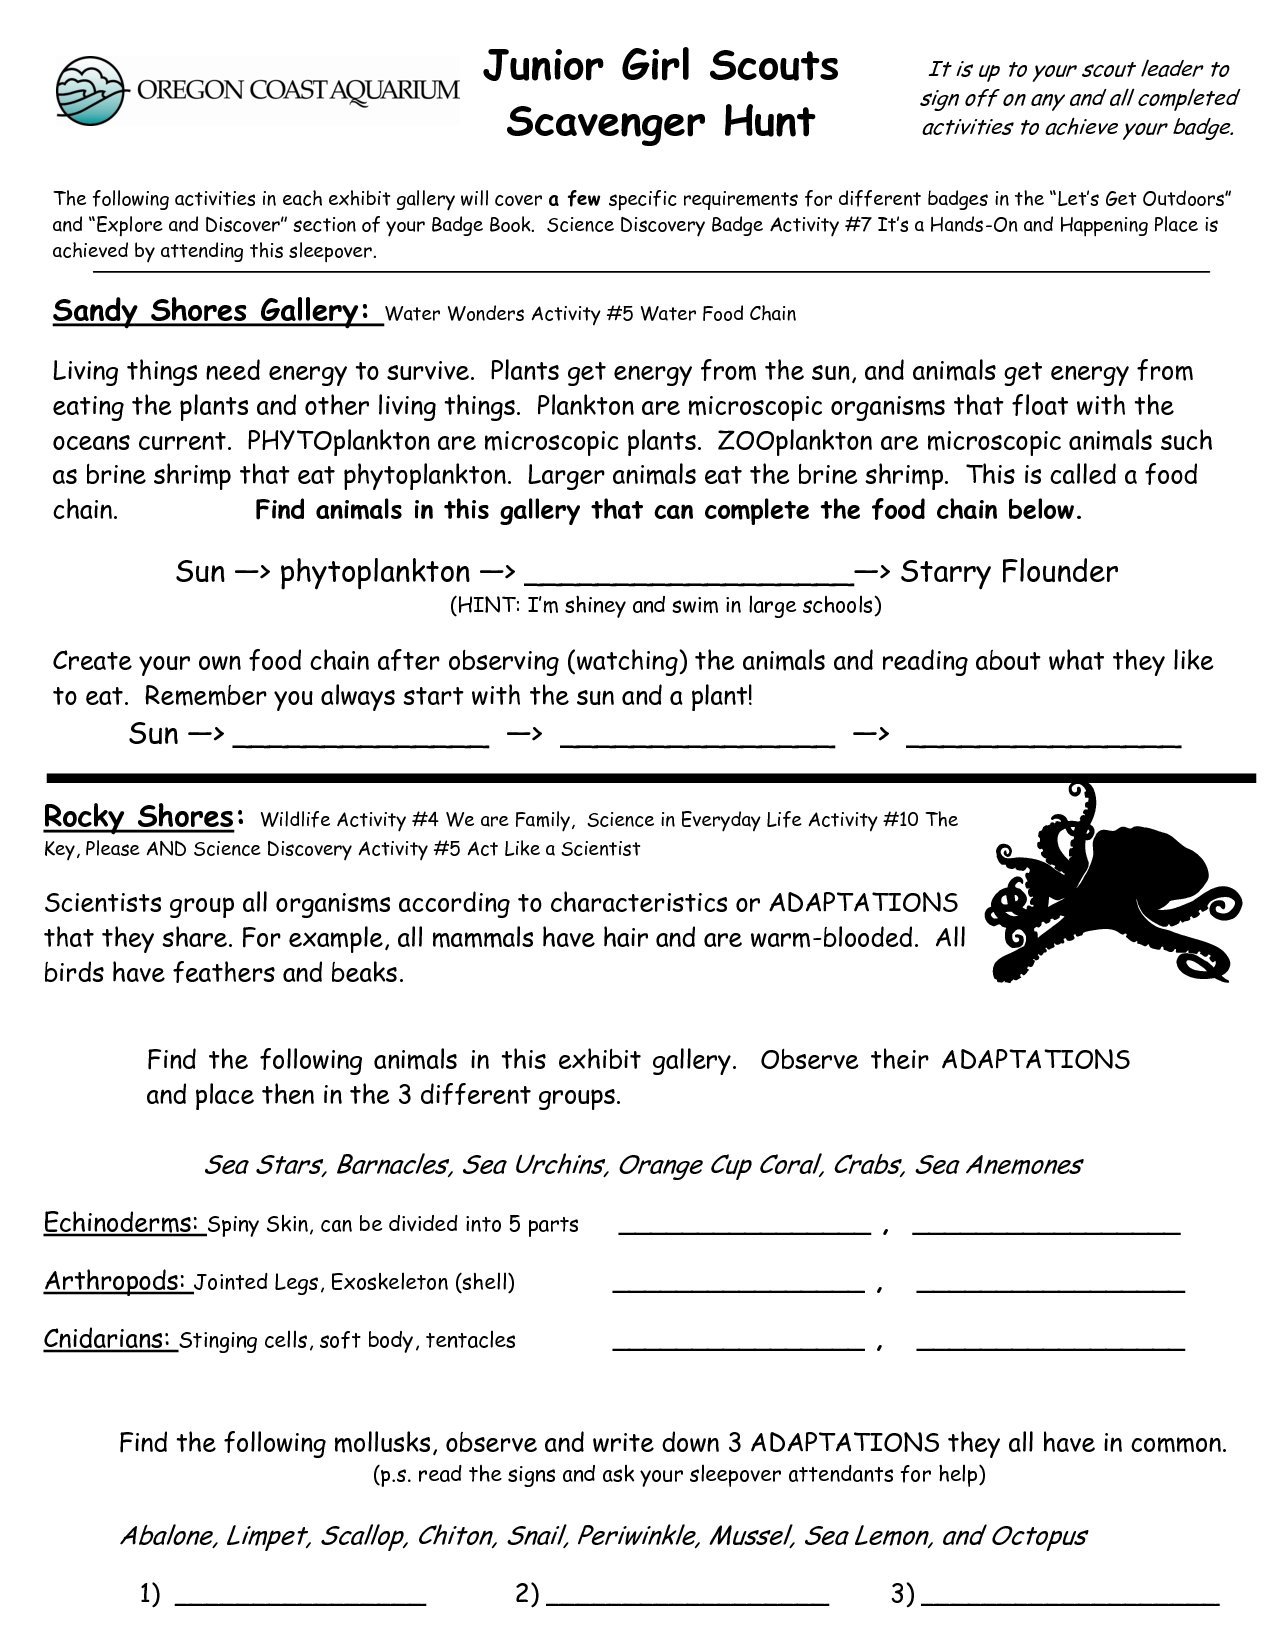 Junior Girl Scout Badge Worksheets Junior Girl Scouts Scavenger Hunt Girl Scouts